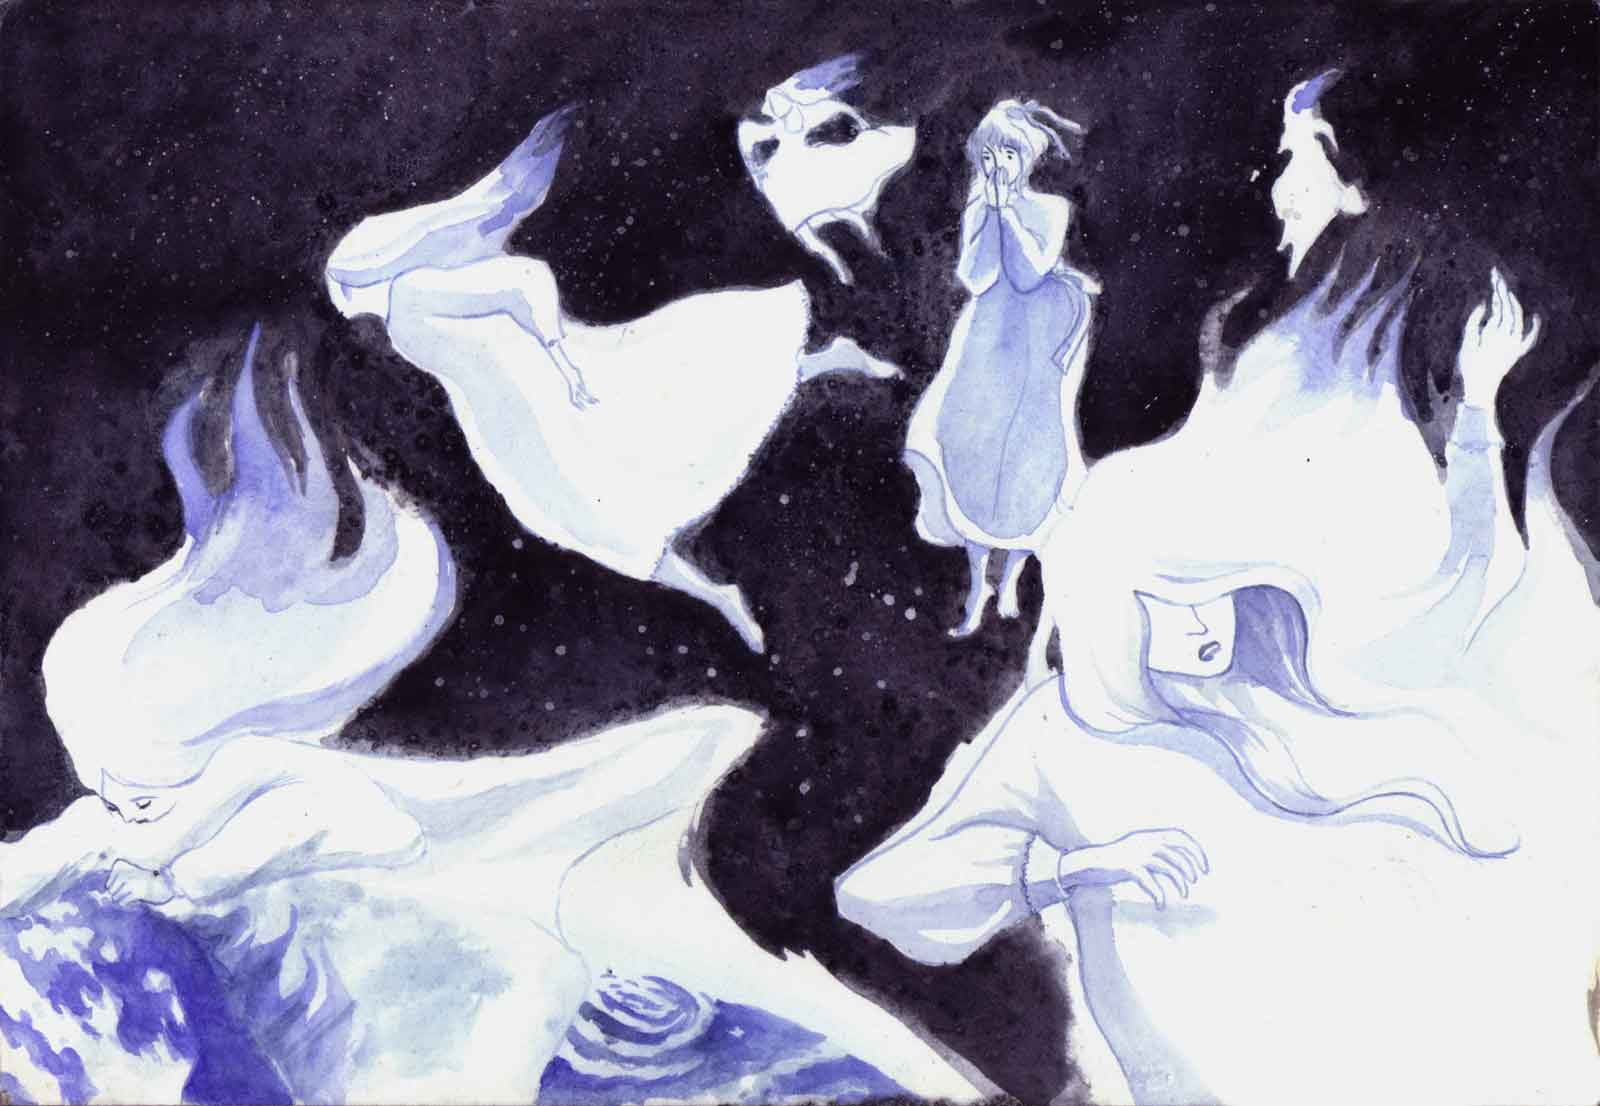 Falling stars incarnated in women are burning when they enter the atmosphere of Earth, all but one that stops for an instant as she is horrified by her fate